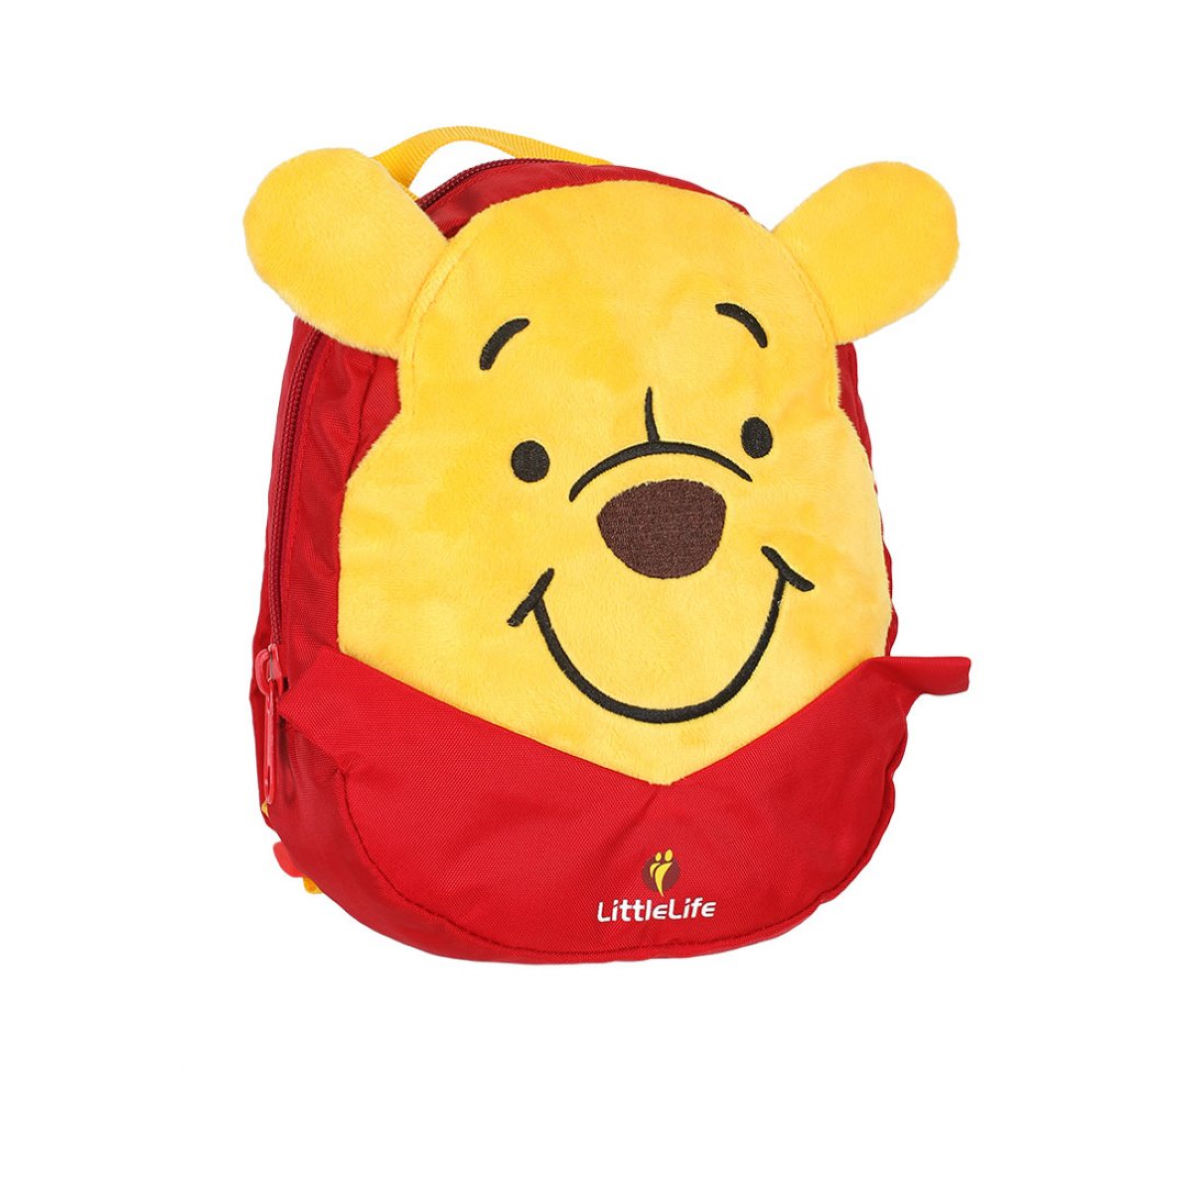 Littlelife LittleLife Toddler Disney Winnie The Pooh Backpacks   Rucksacks